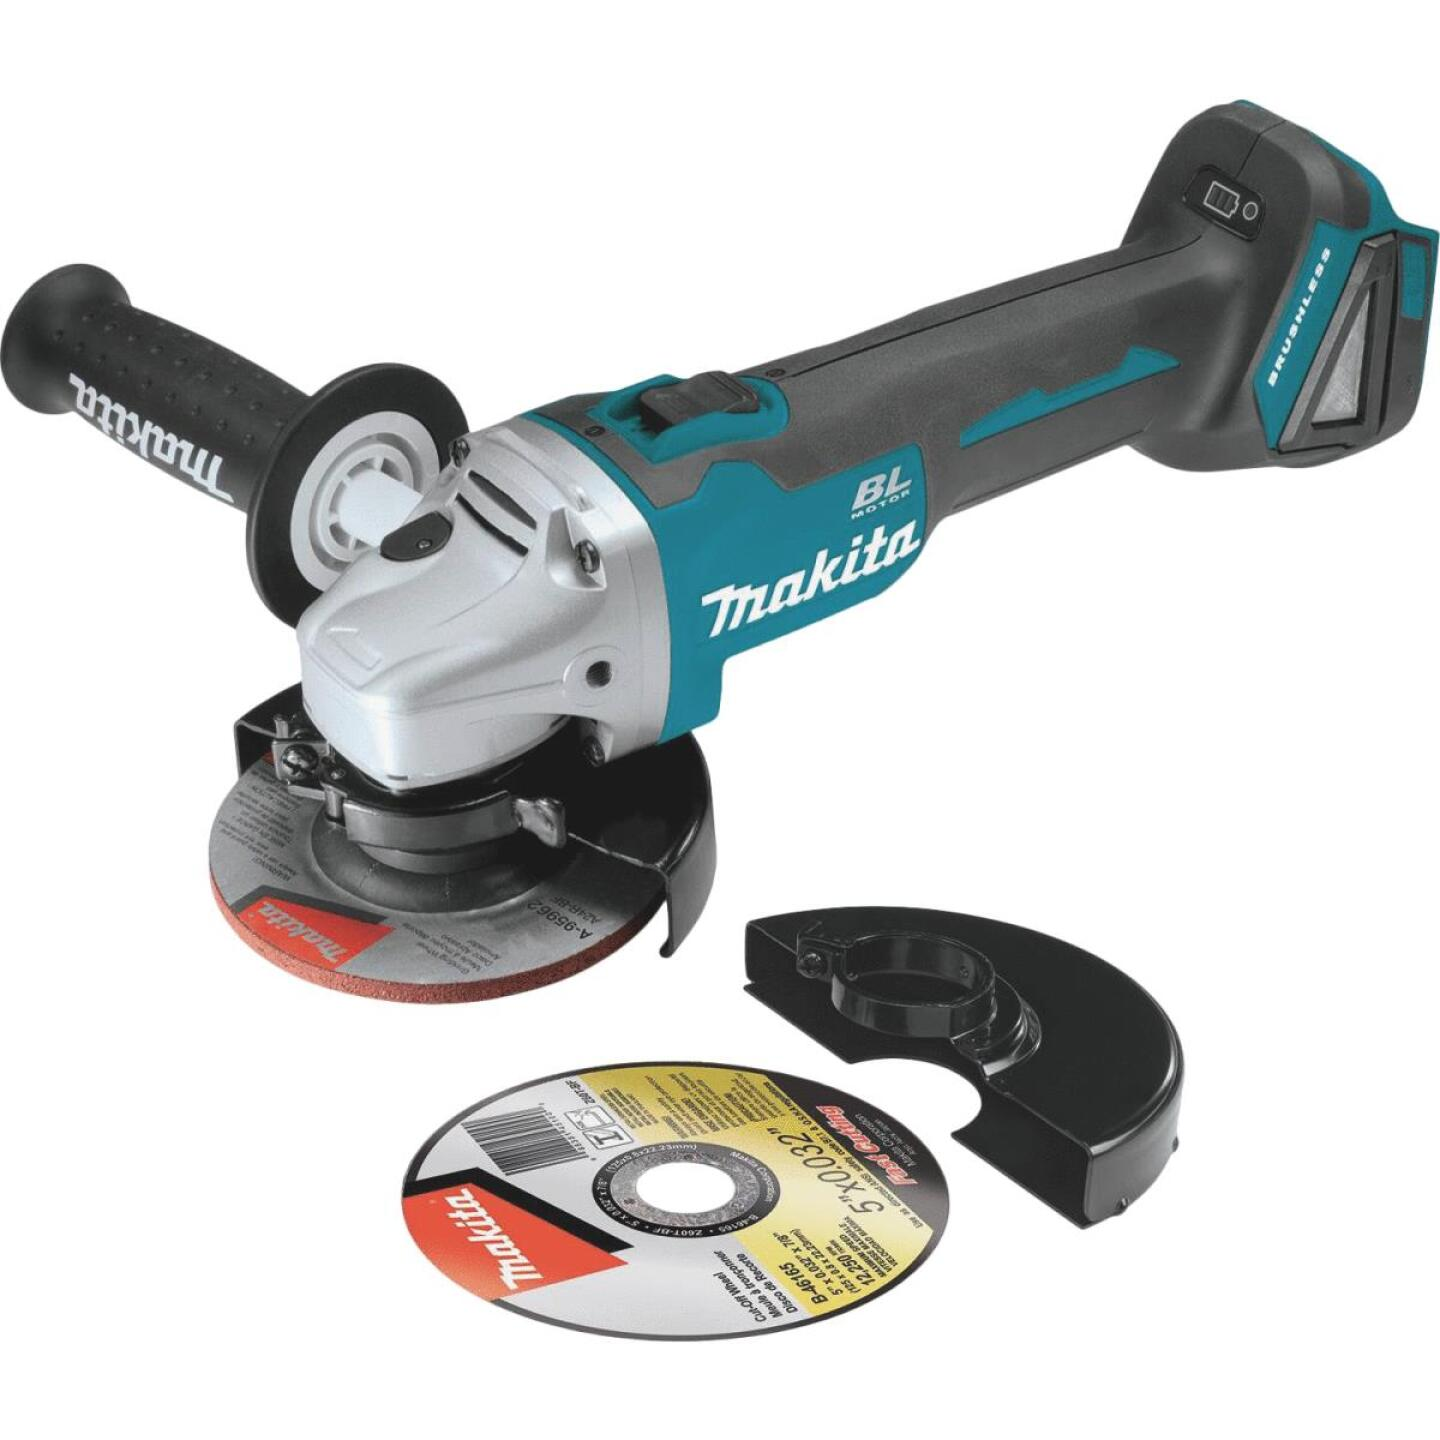 Makita 18 Volt LXT Lithium-Ion Brushless Cordless 4-1/2 In.-5 In. Cordless Angle Grinder/Cut-Off Tool (Bare Tool) Image 1